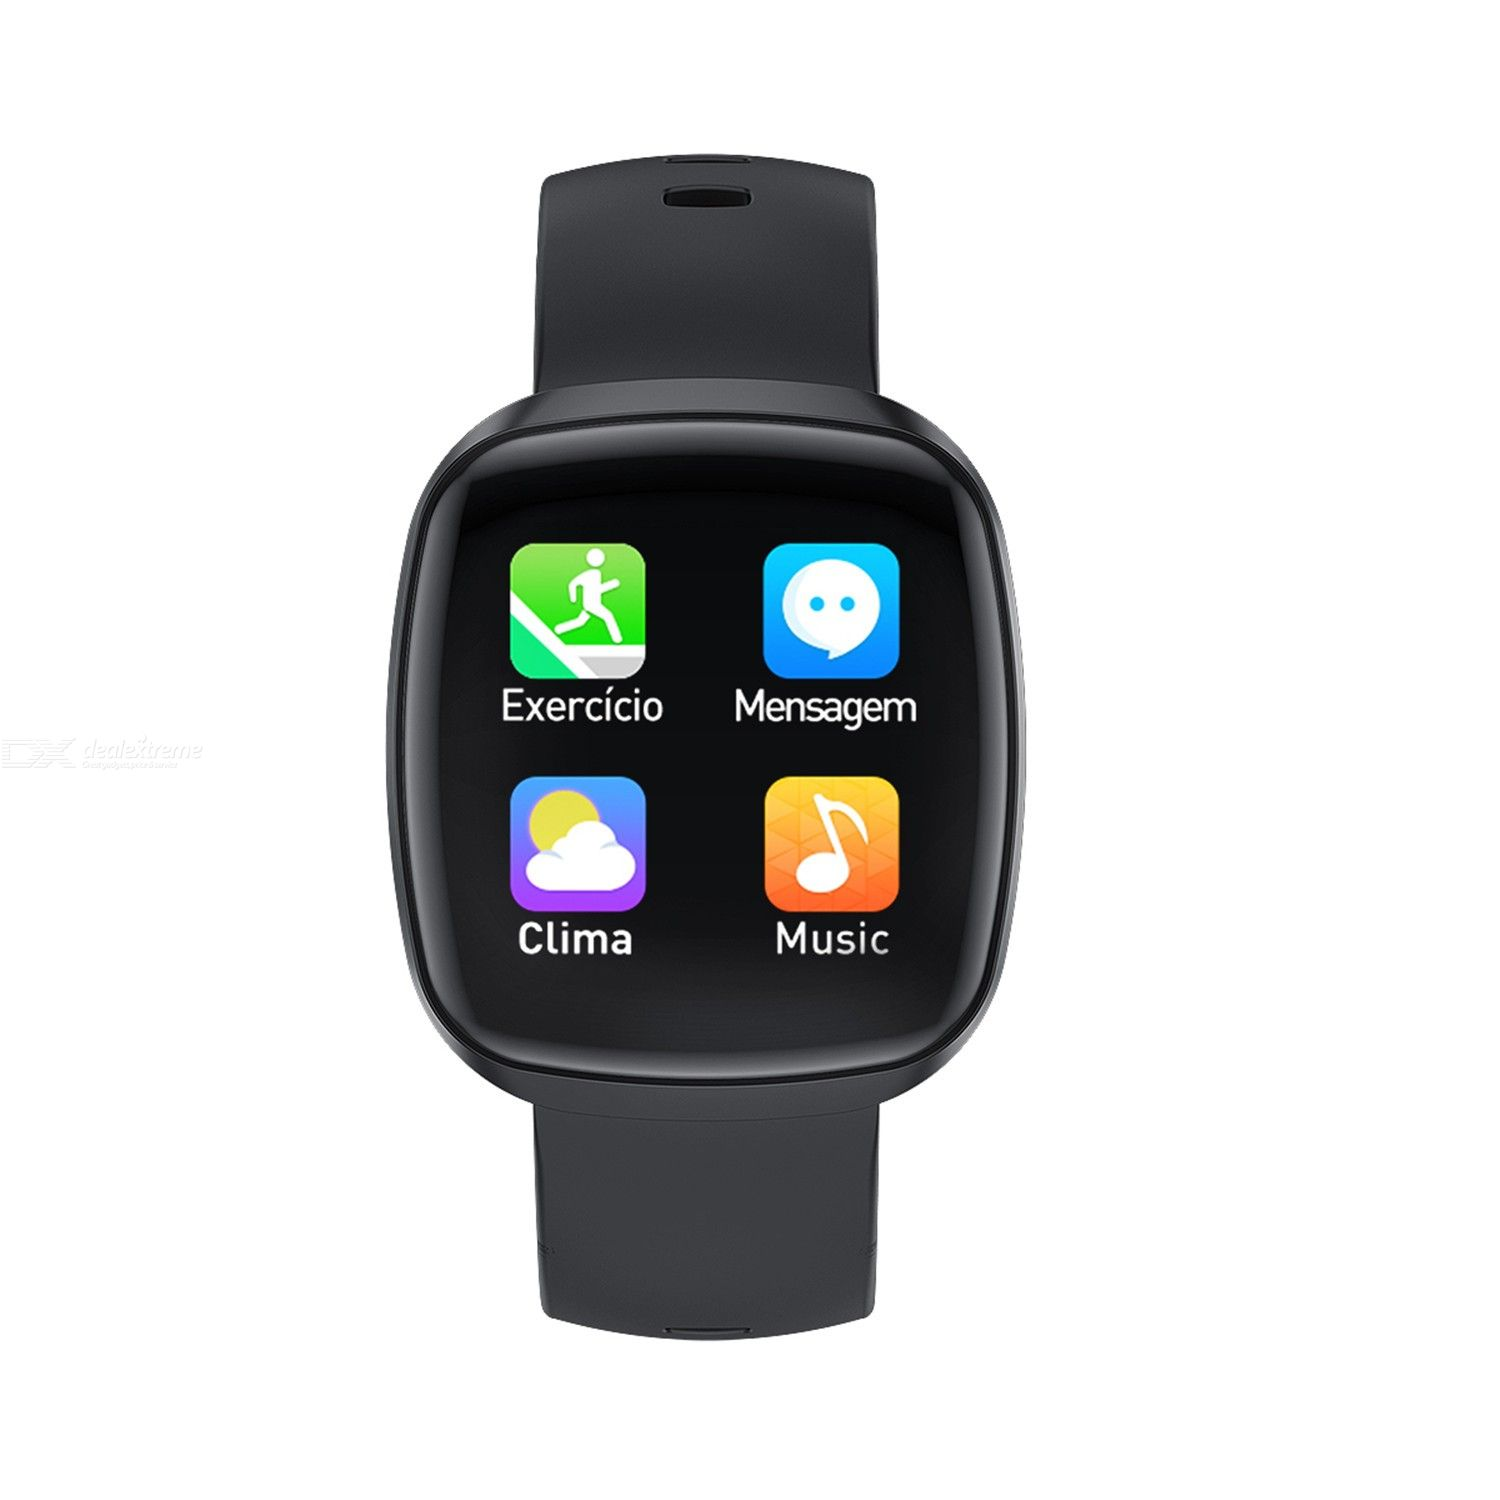 Intelligent watch t8-jw full touch screen temperature message alert multiple exercise modes heart rate blood pressure blood oxyg